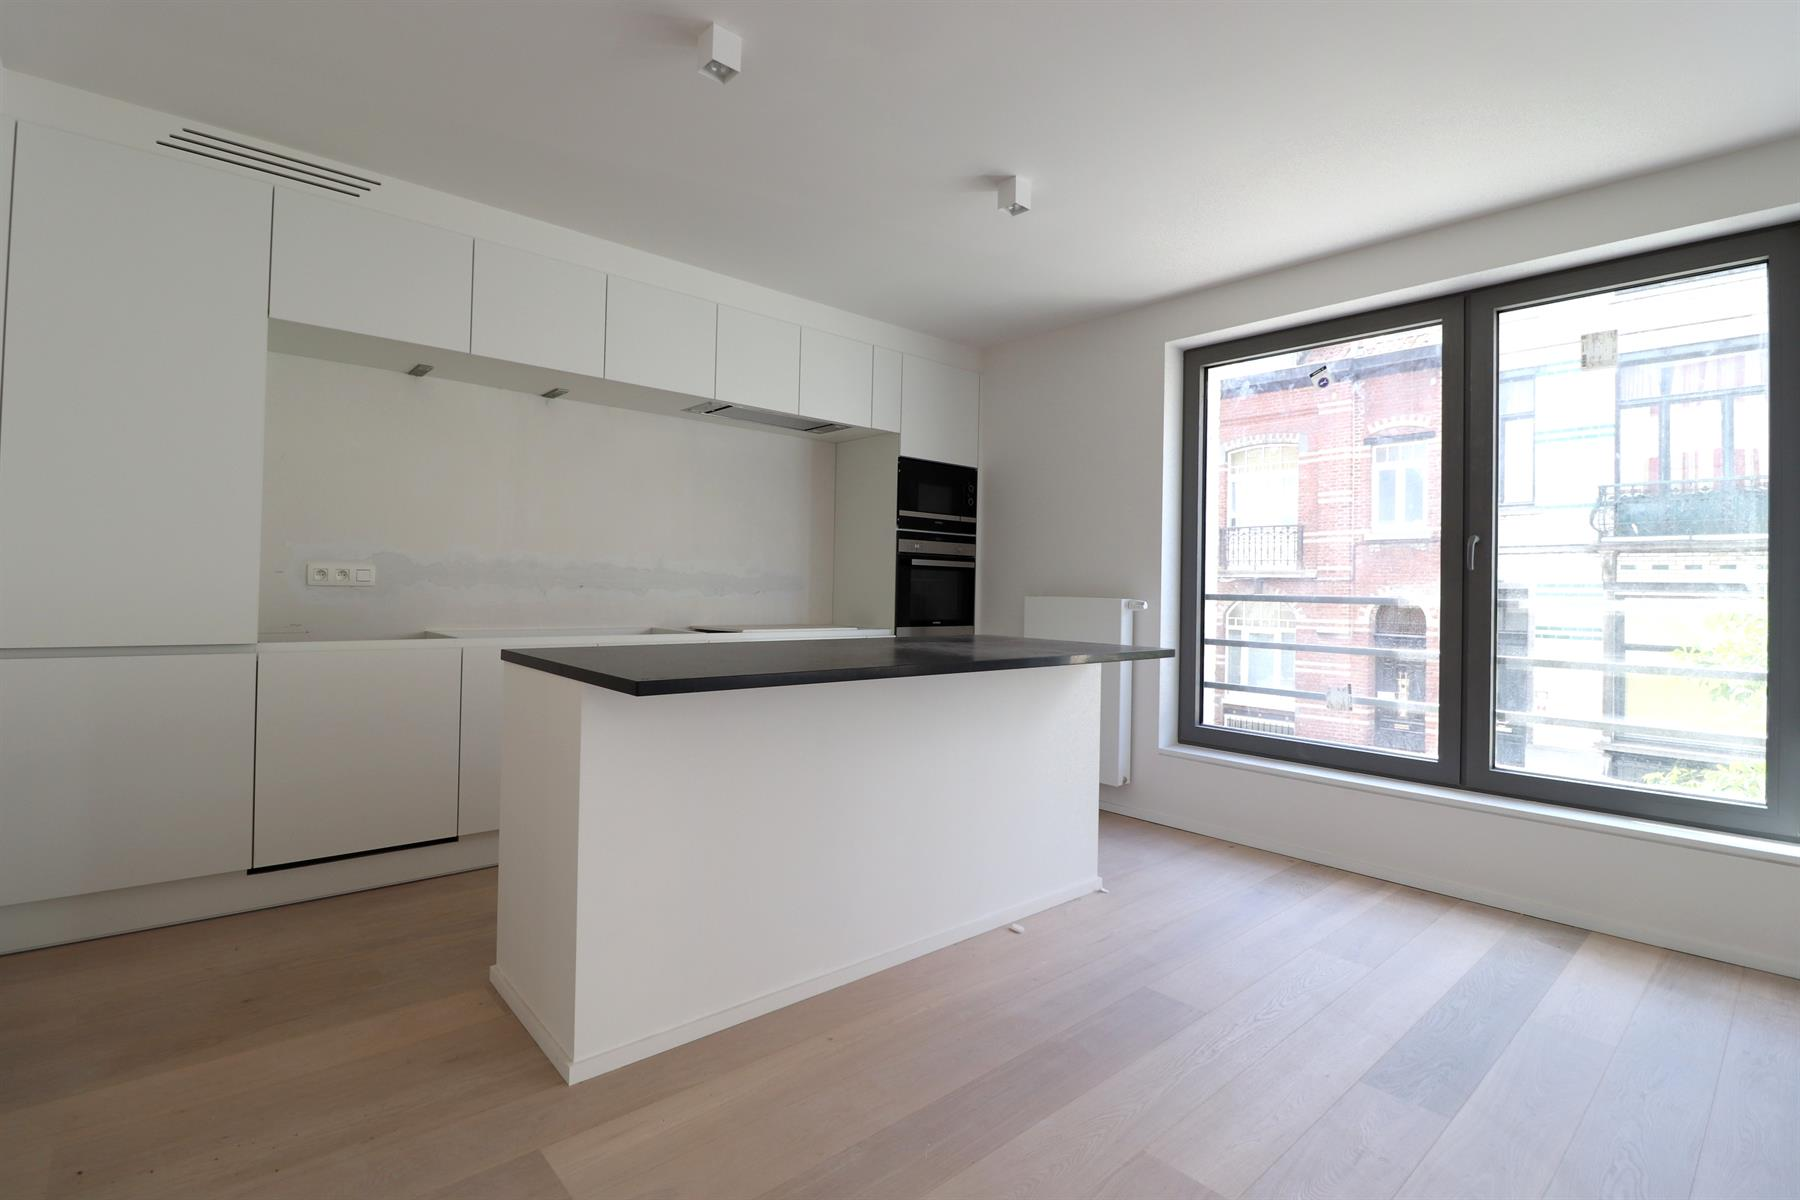 Appartement - Uccle - #4089881-3